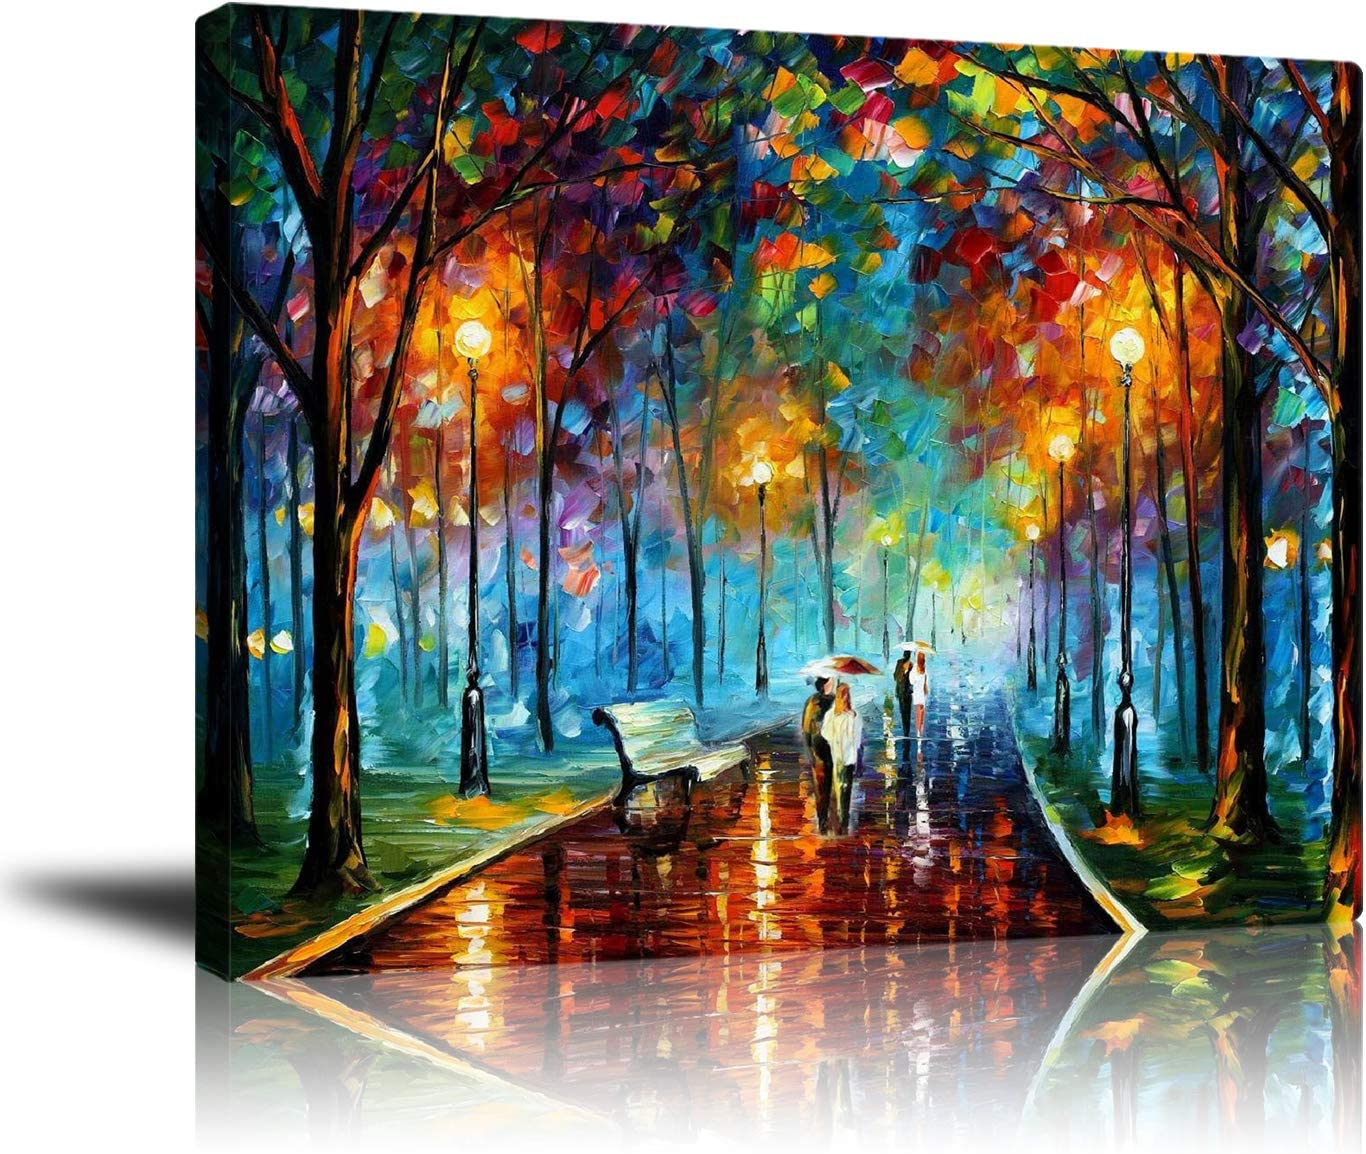 Amazon Com Unframed Couple Canvas Wall Art Print Contemporary Abstract Colorful Oil Paintings Romantic Lovers Stroll In Rain Pictures For Livingroom Bedroom Office Home Decorations Ready To Hang 16x20 Inch Posters Prints